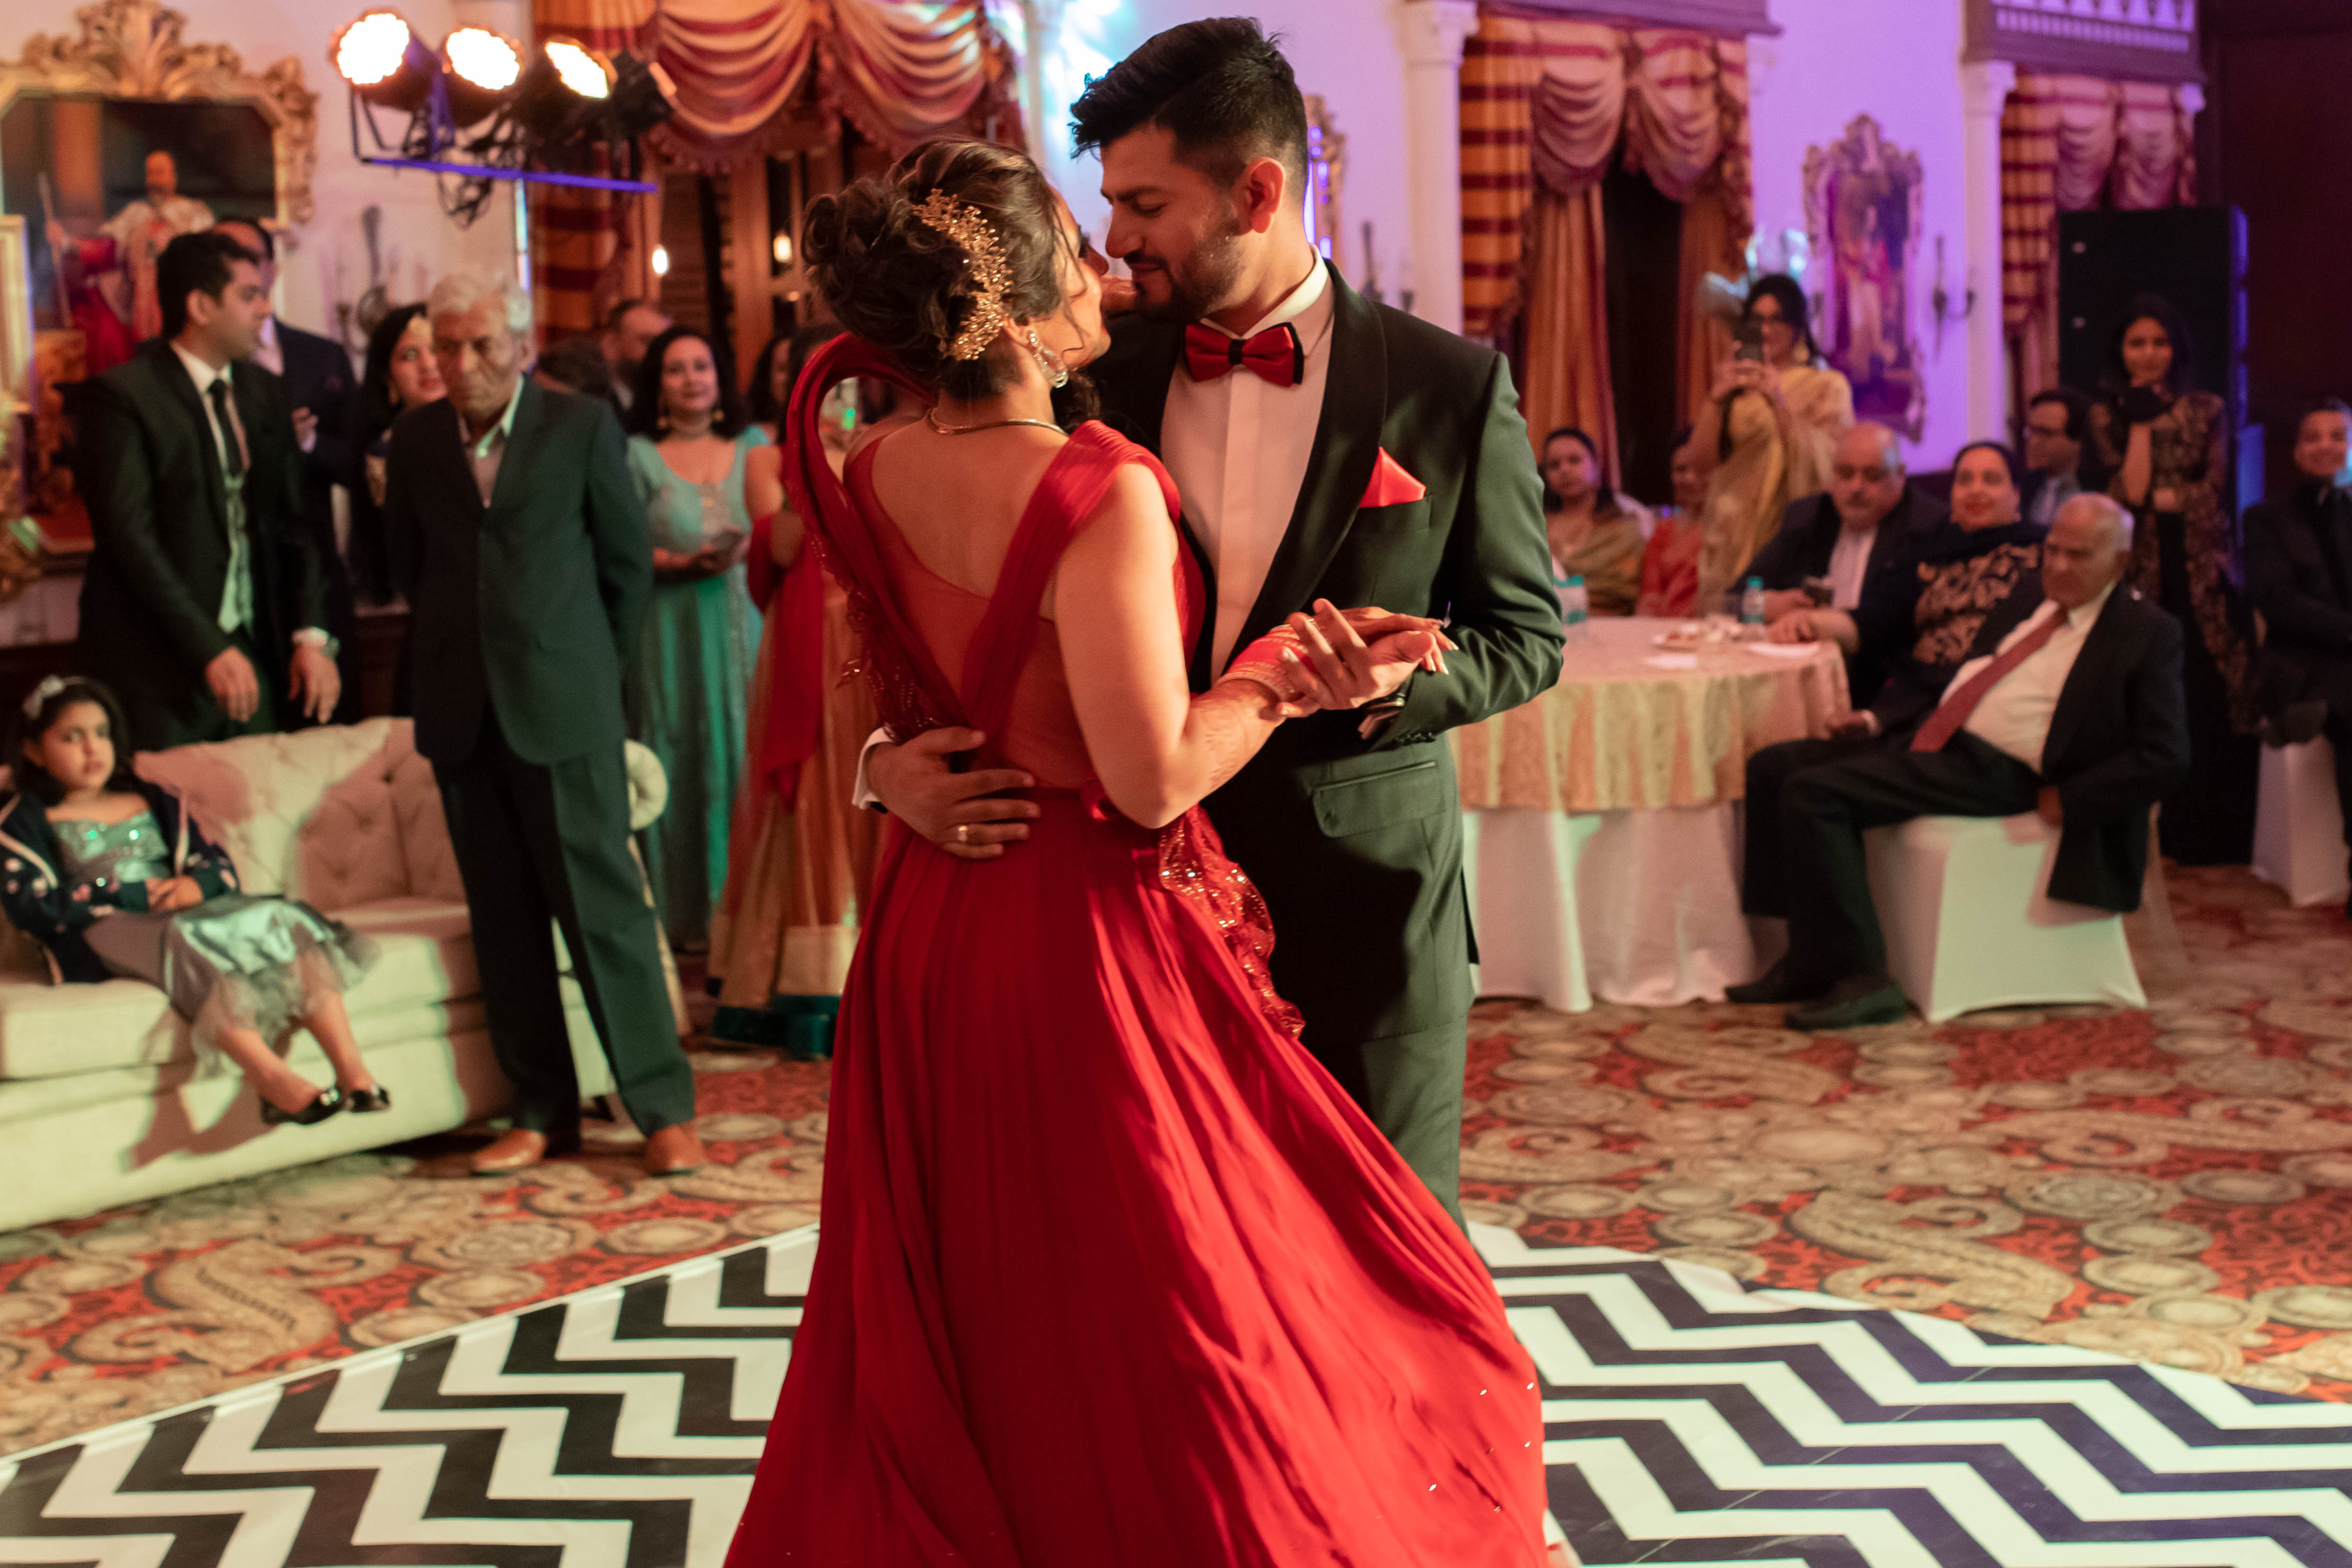 candid romantic shot of the couple dancing